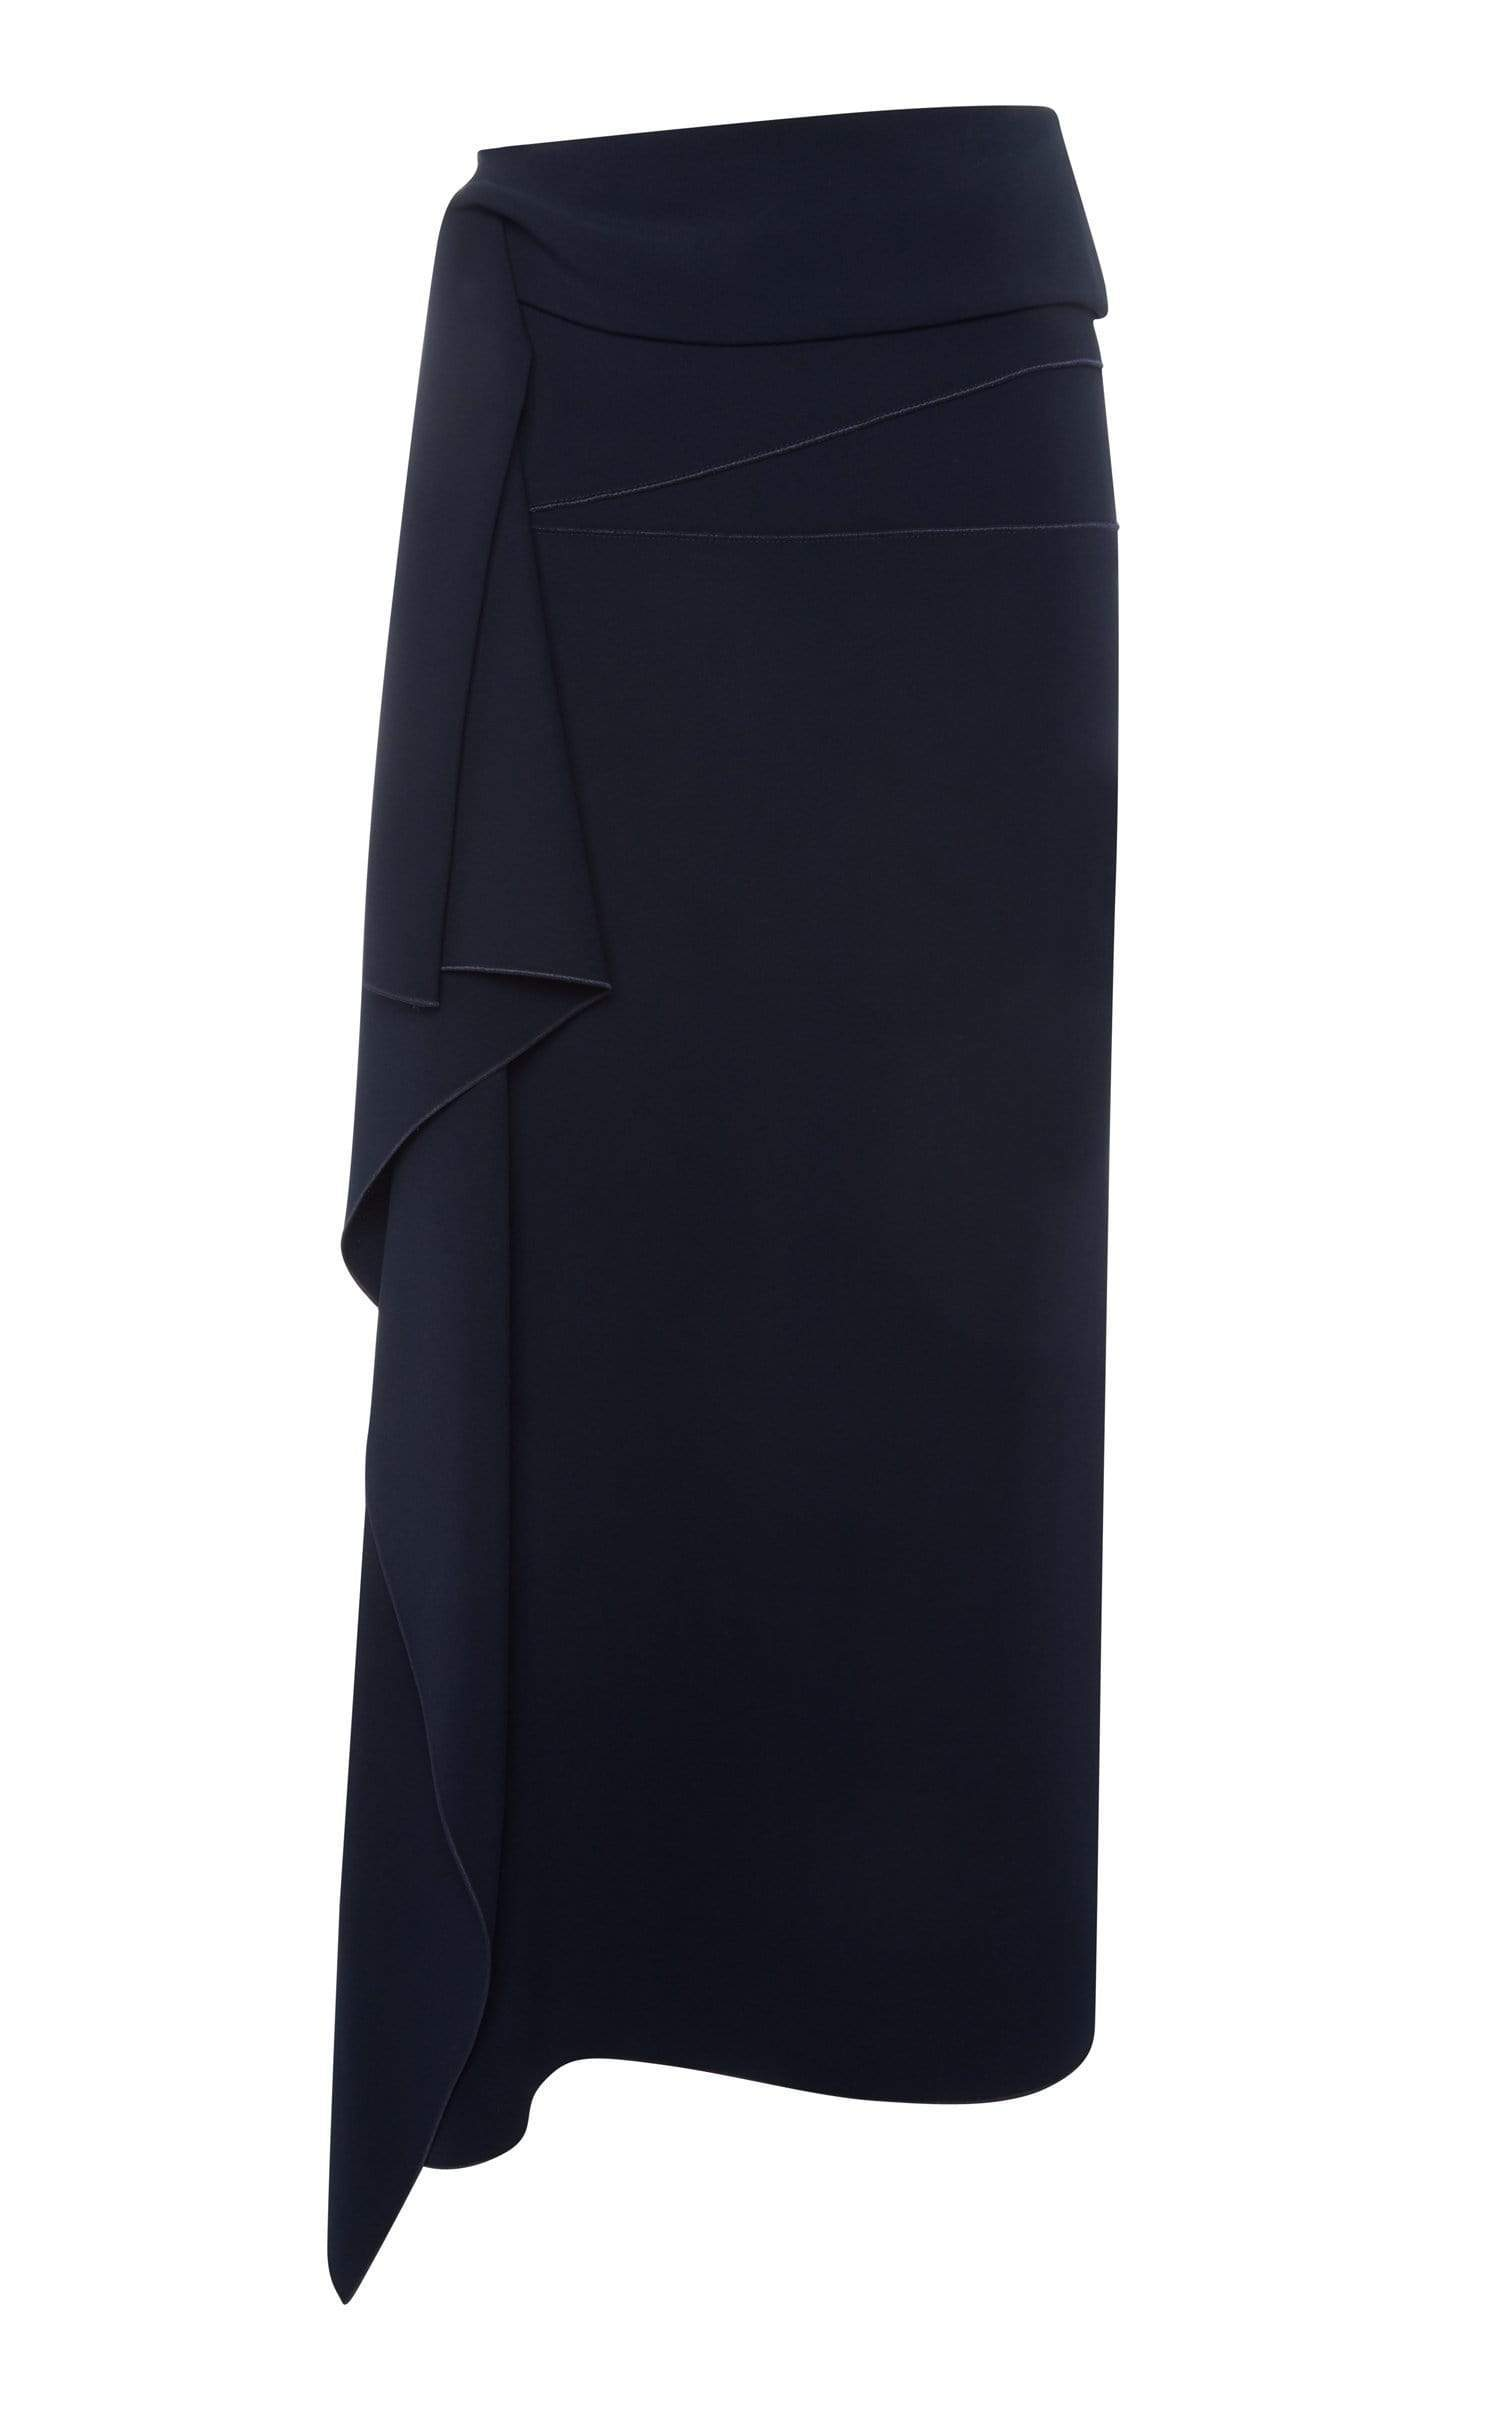 Kelley Skirt In Navy from Roland Mouret